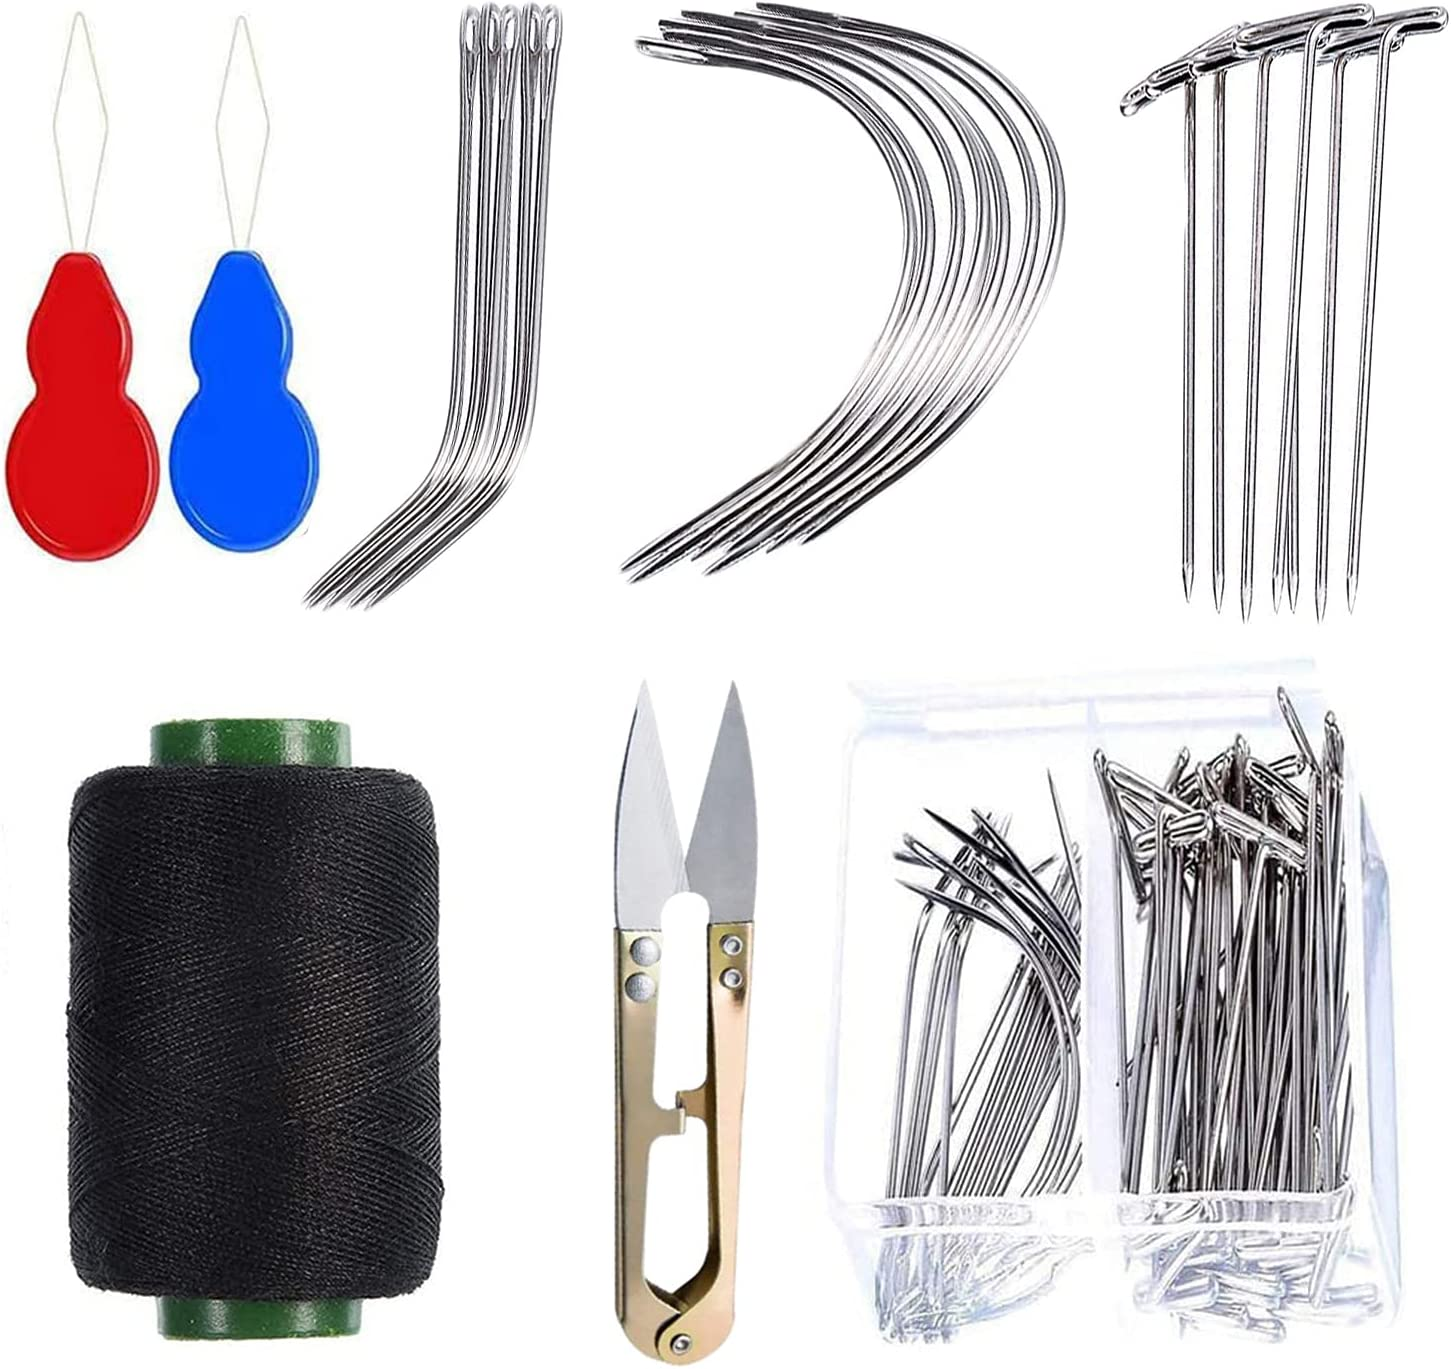 Hair Thread Super beauty Fixed price for sale product restock quality top for Weave Needle and Kit Sewing Hand f